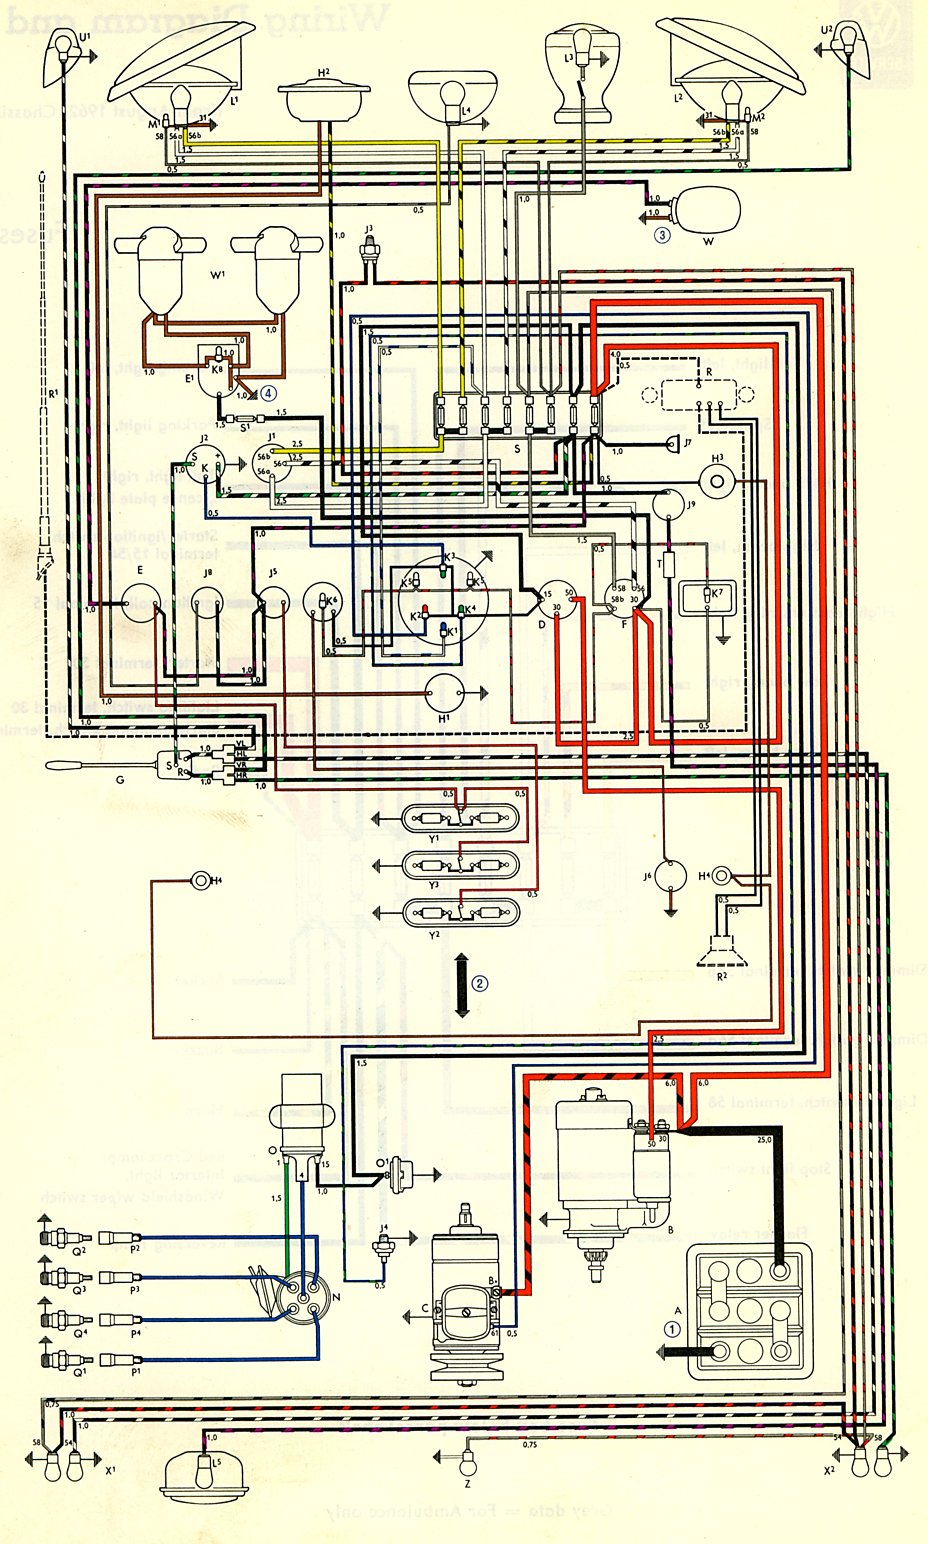 1963 bus wiring diagram (usa) thegoldenbug com 1999 VW Beetle Wiring Schematic Wiring Diagram For 1963 Vw #5